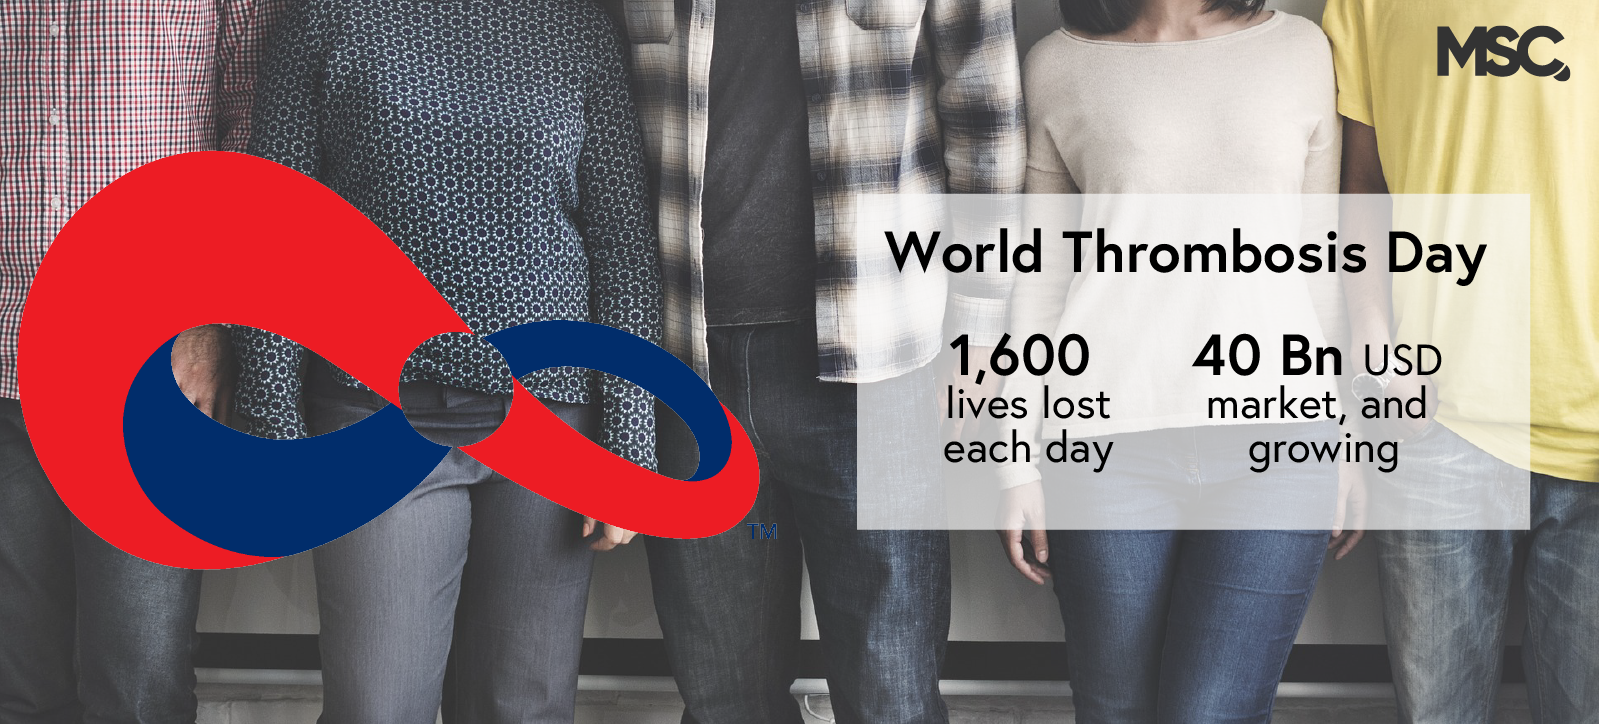 World Thrombosis Day: Taking 1,600 lives daily and increasing